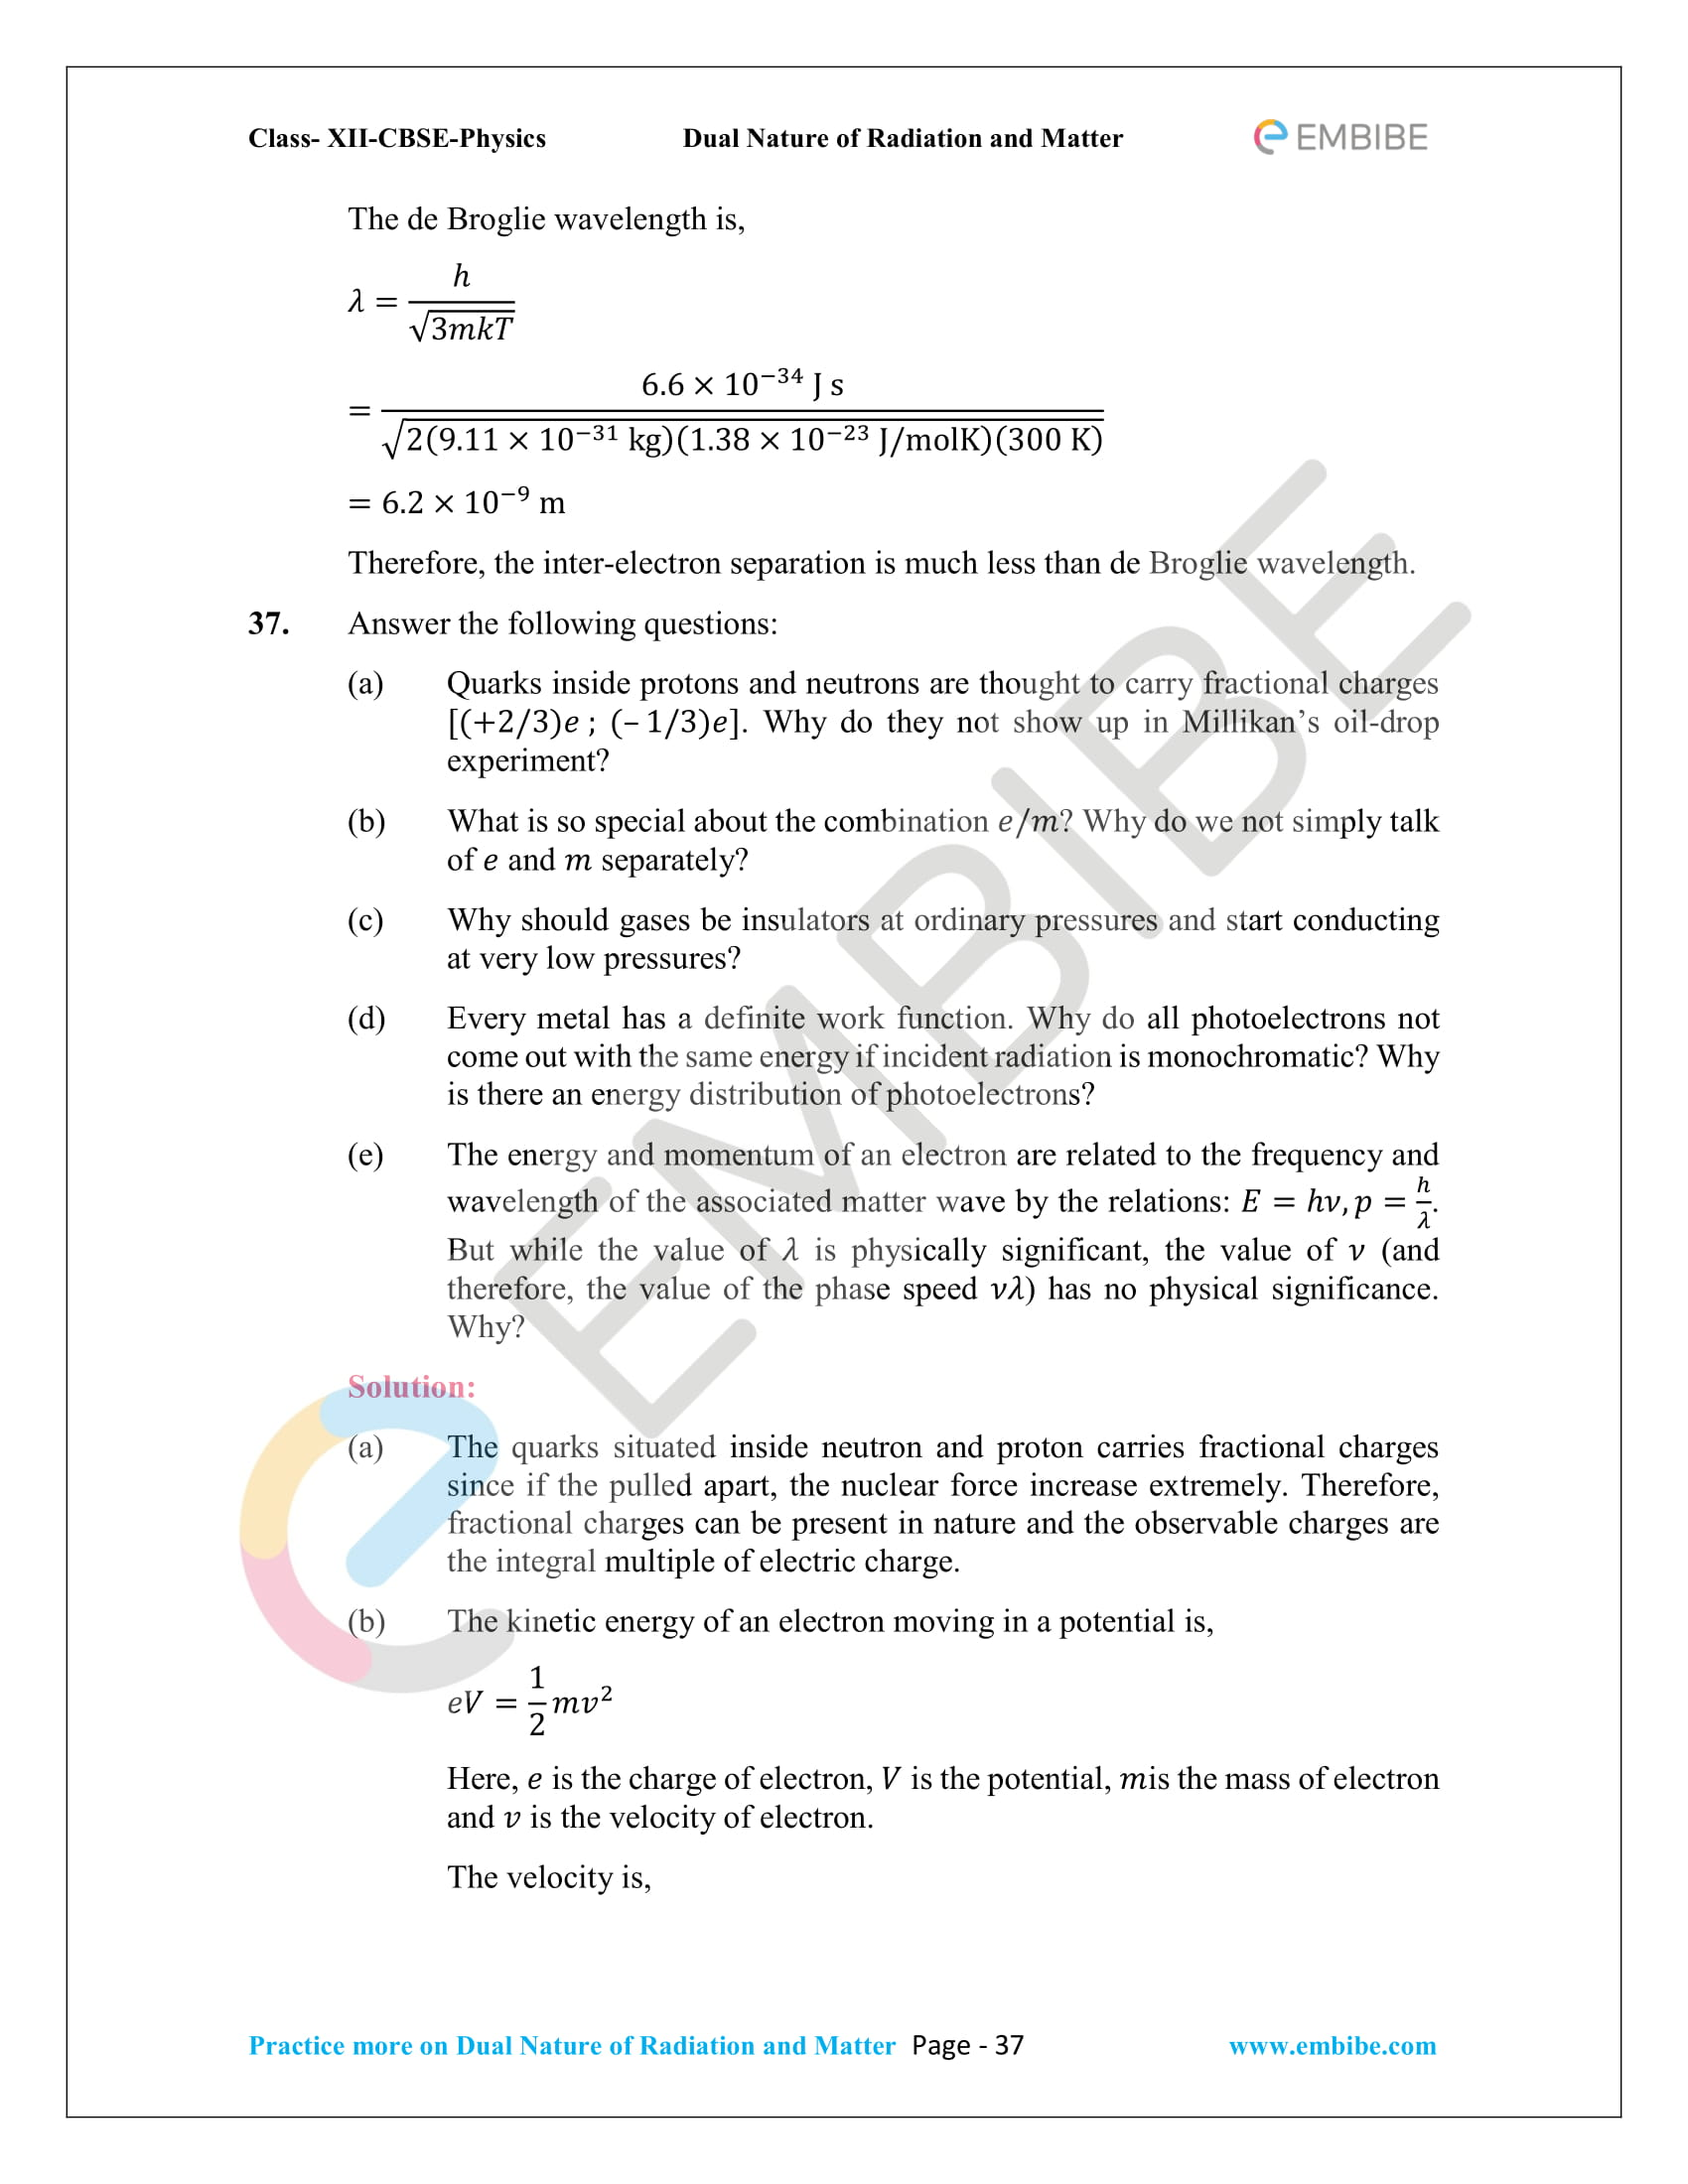 NCERT_Grade 12_Physics_Ch_11_Dual Nature of Radiation and Matter-37